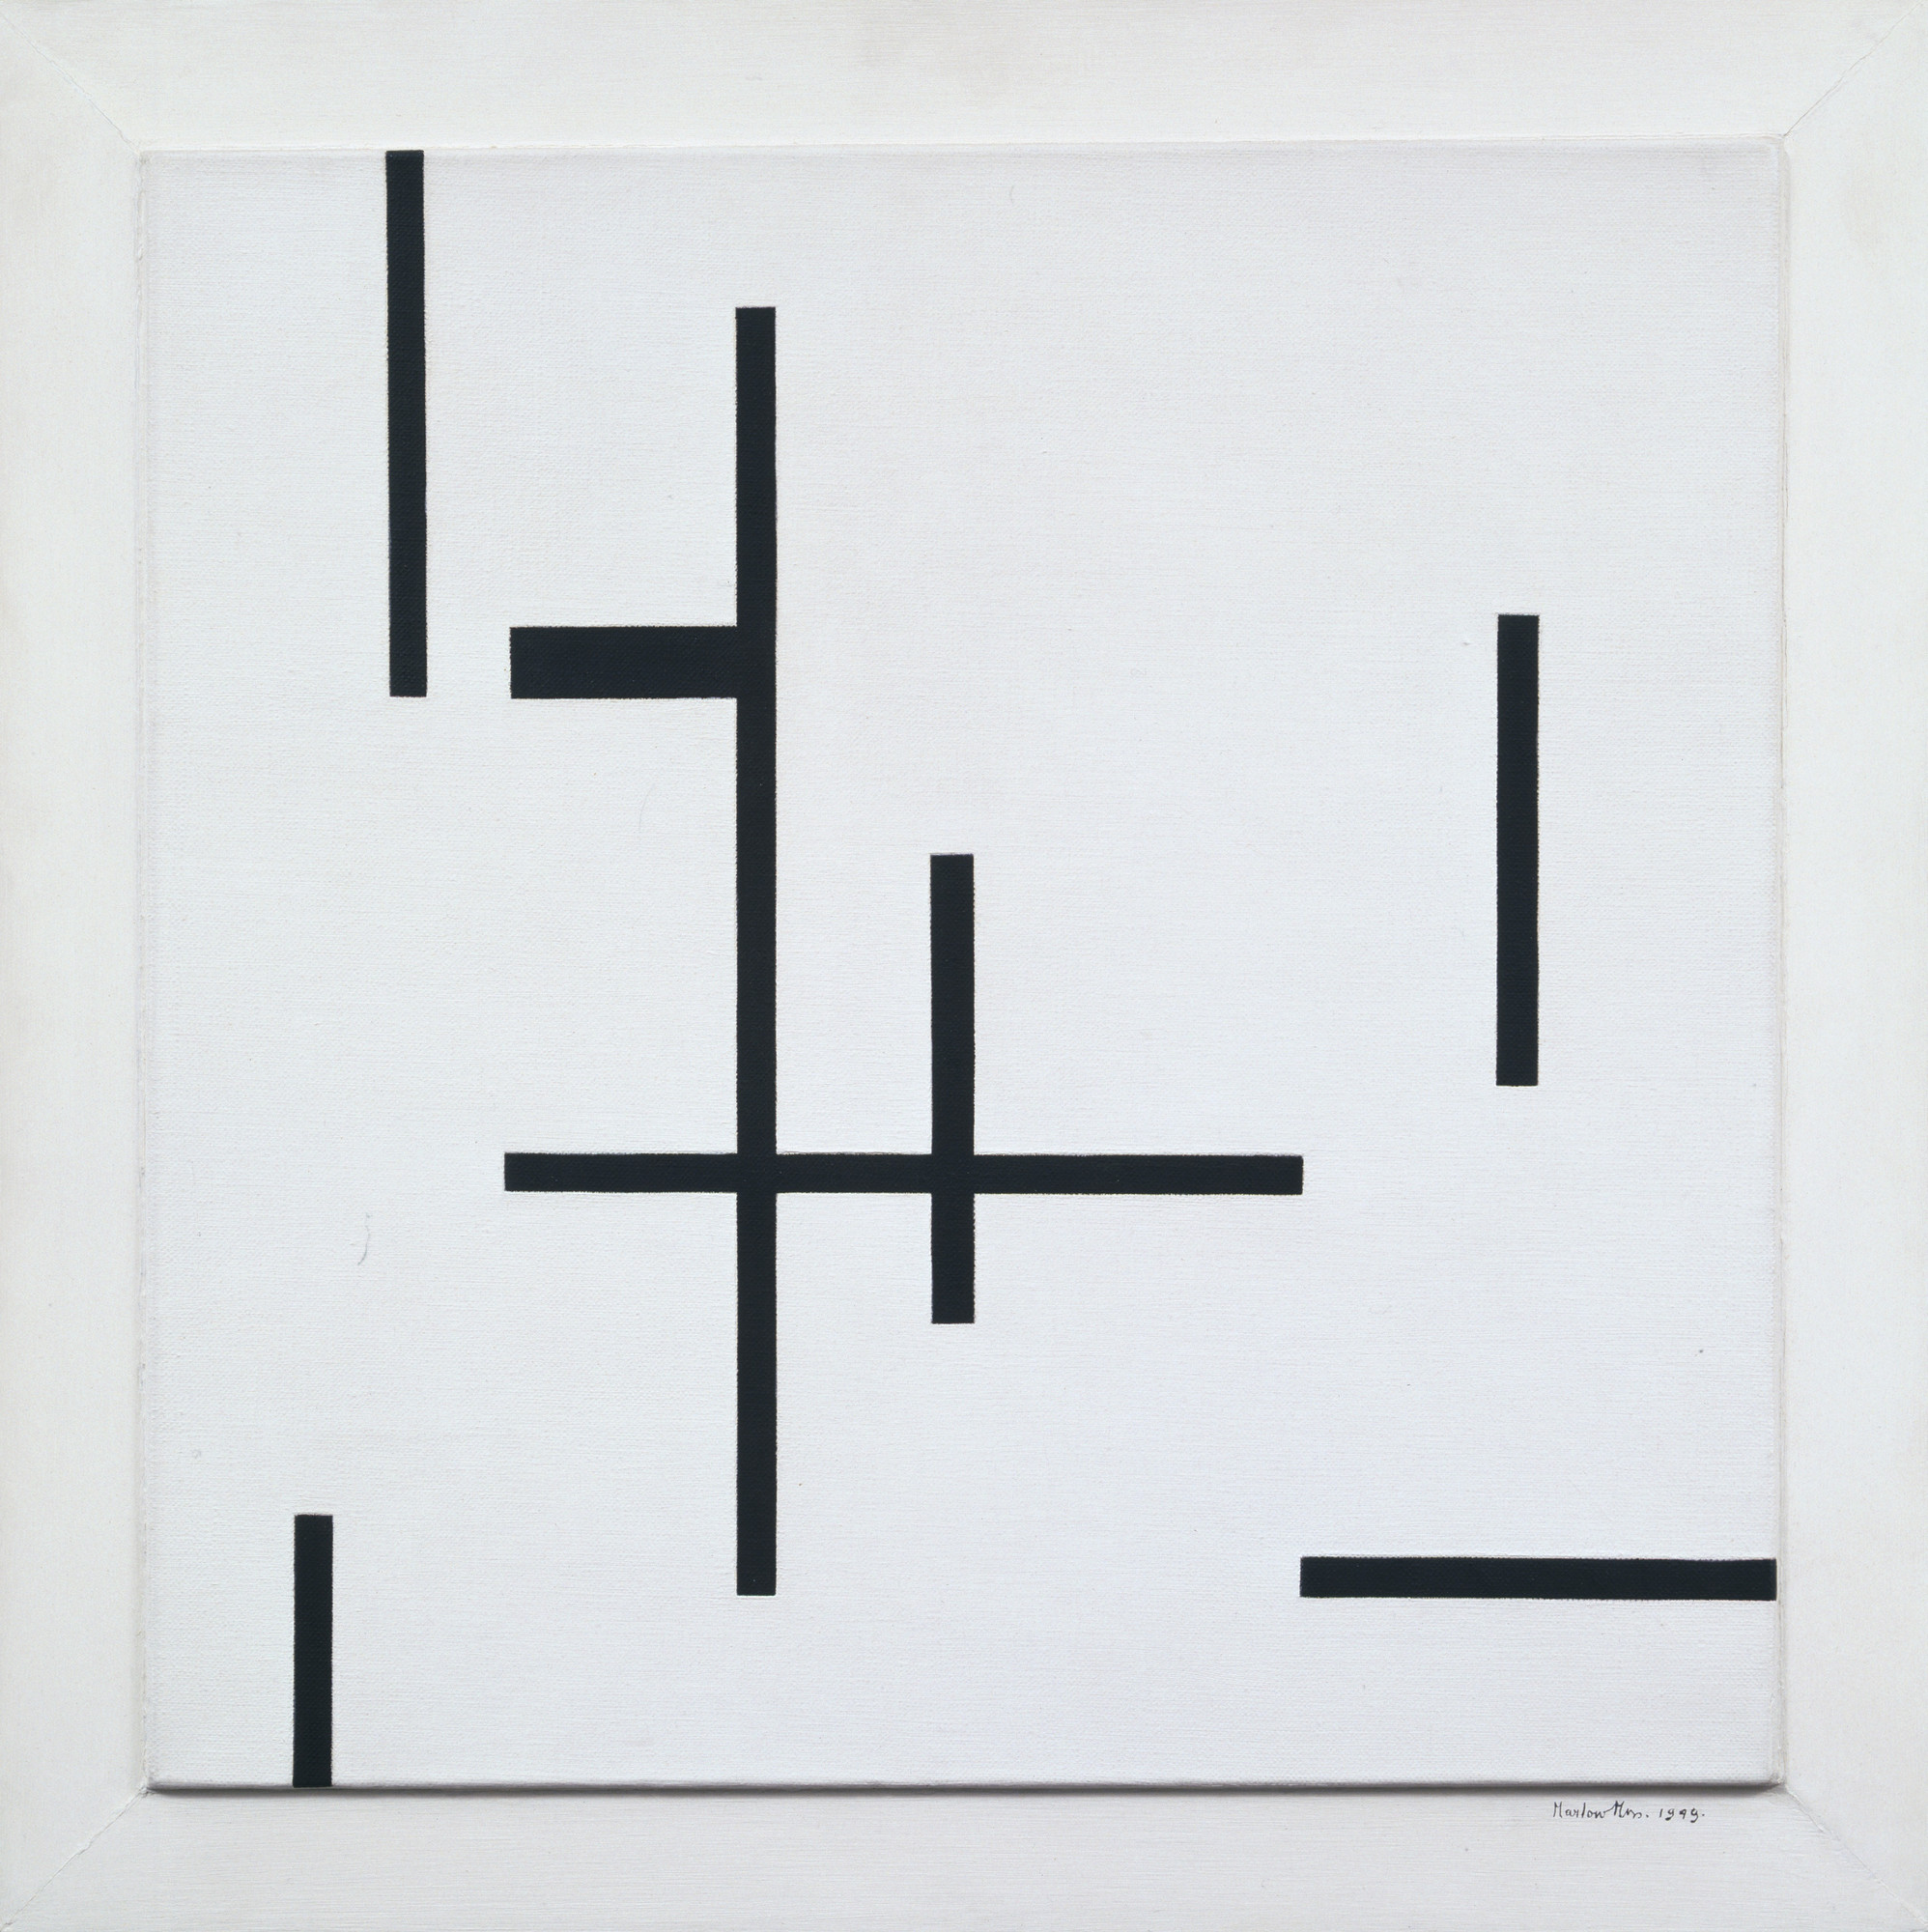 Marlow Moss. Composition in Black and White Number 4. 1949